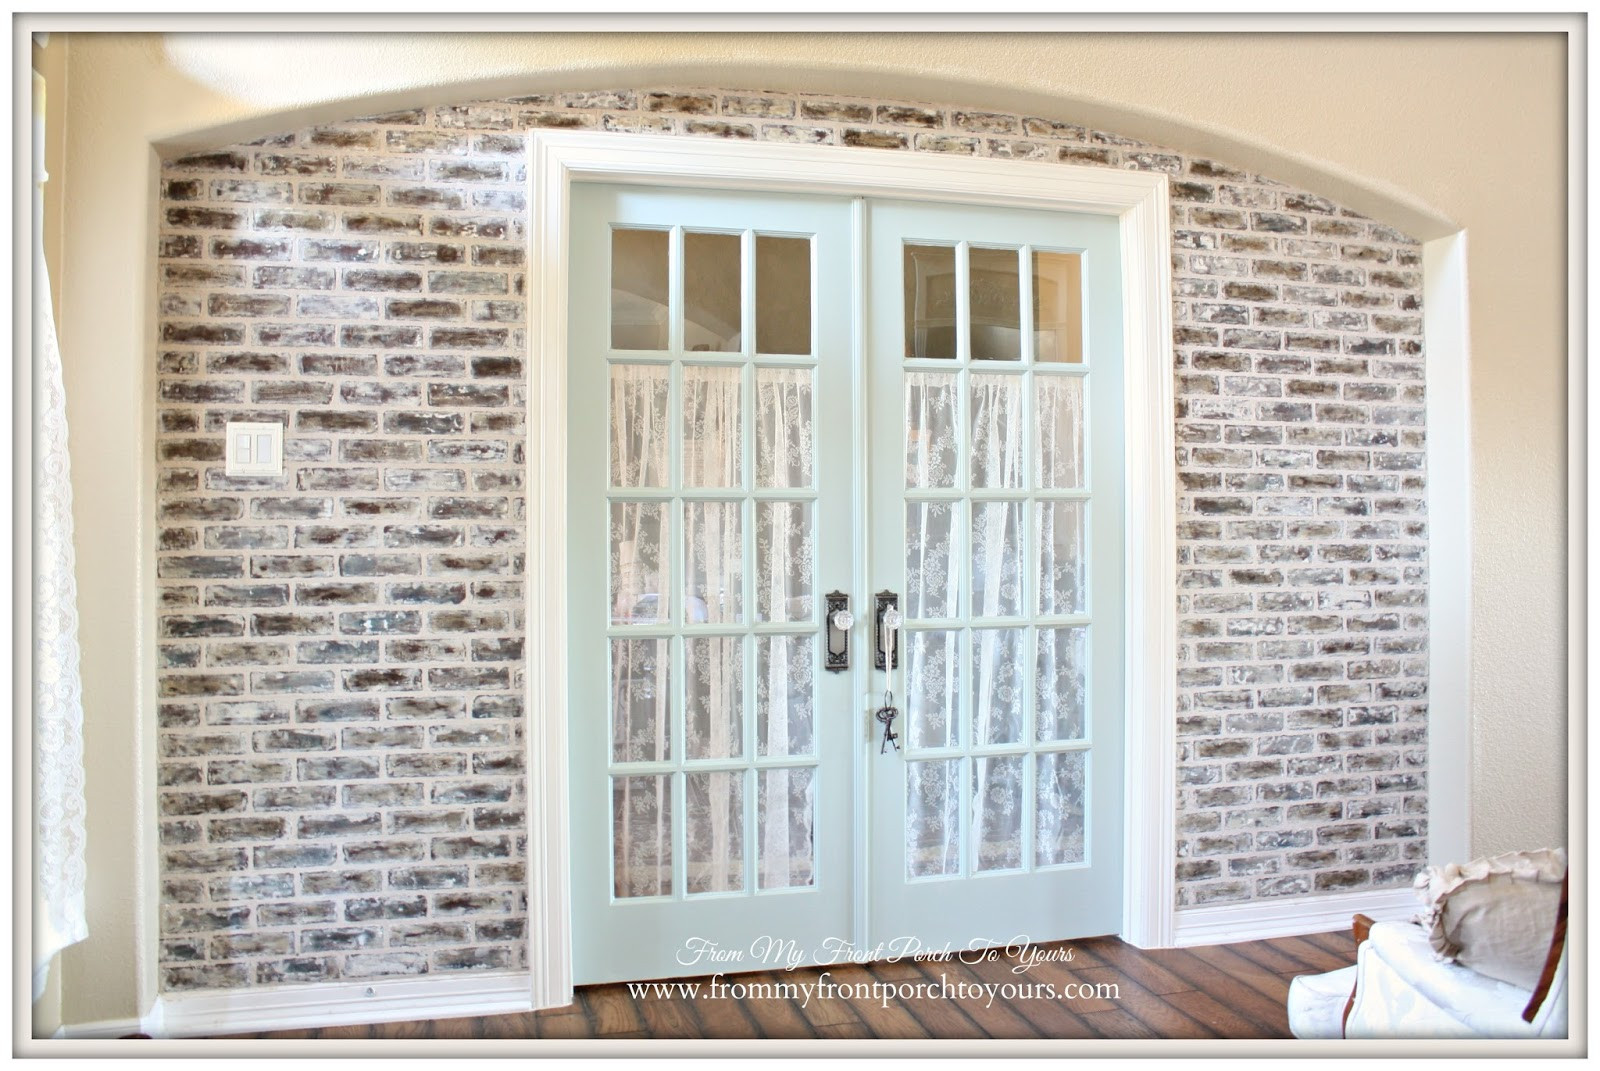 Best ideas about DIY Brick Walls . Save or Pin From My Front Porch To Yours DIY Faux Brick Wall Tutorial Now.